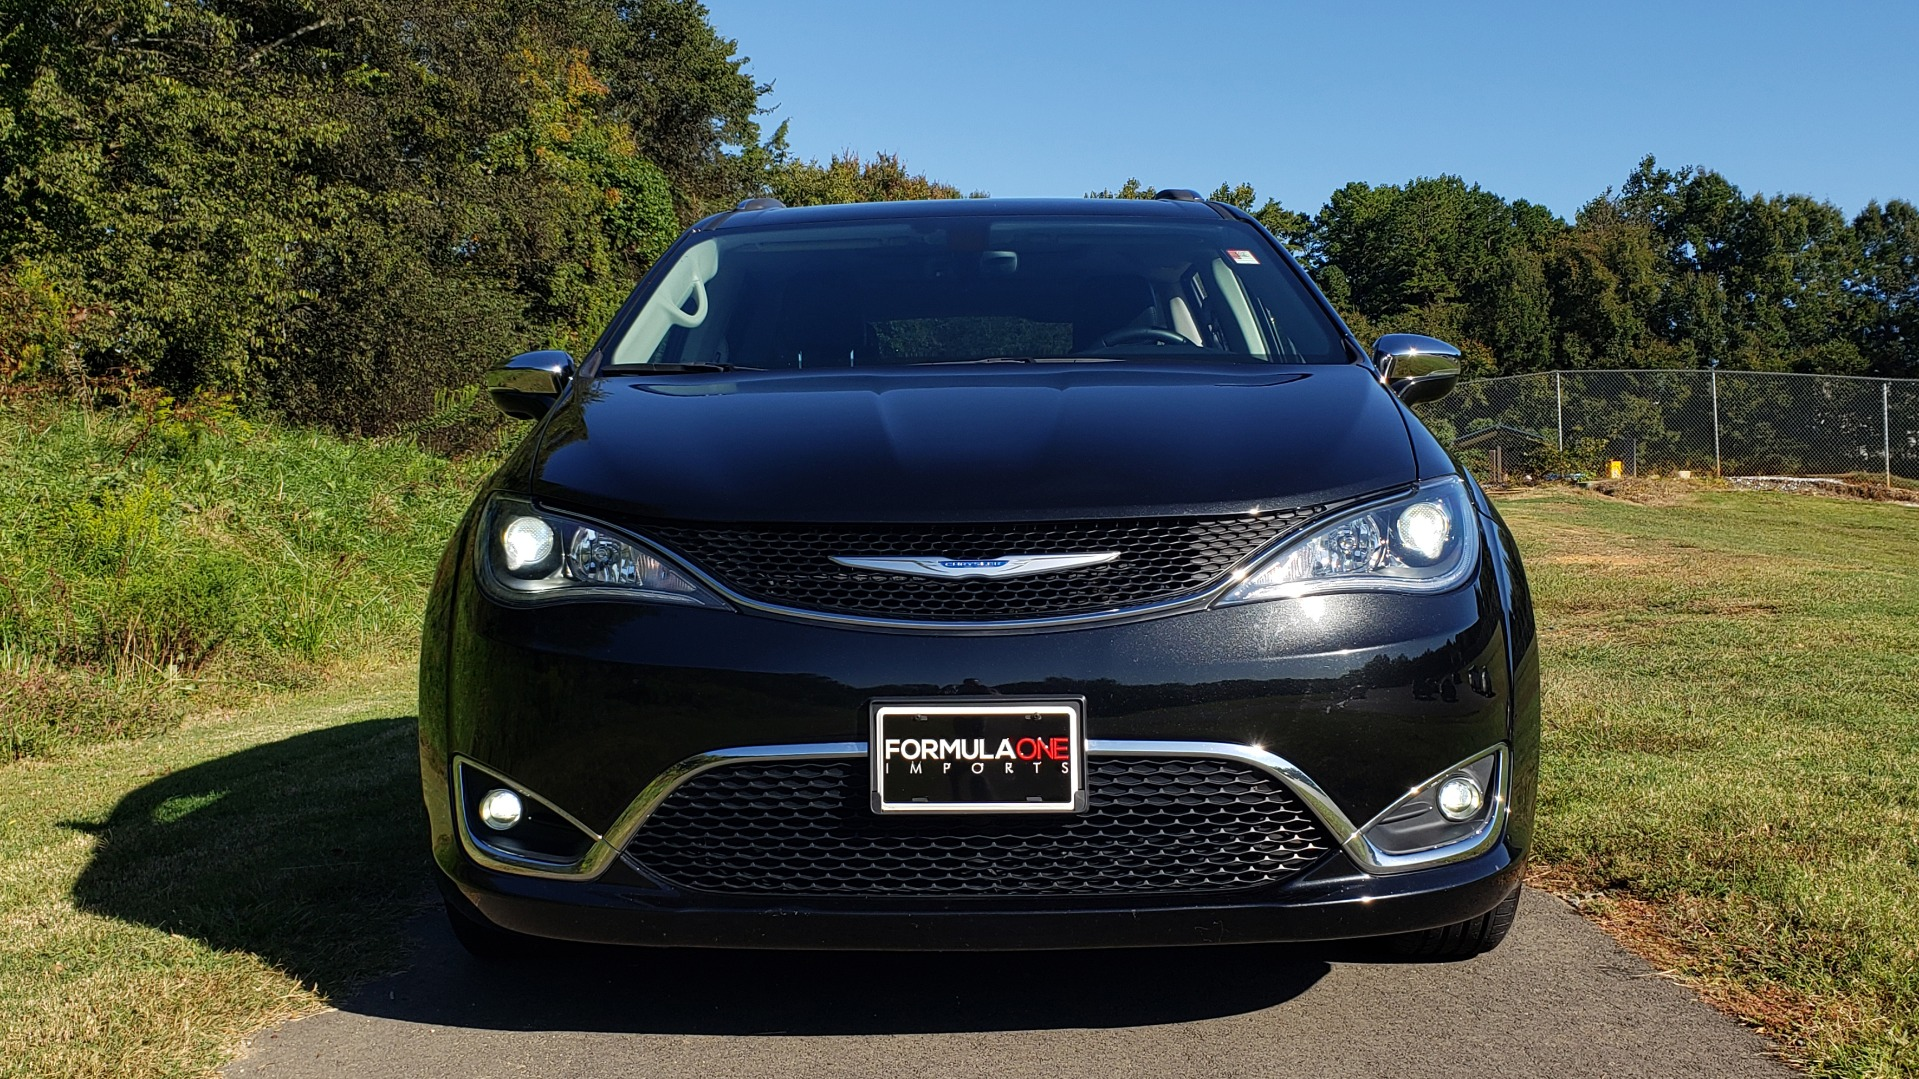 Used 2018 Chrysler PACIFICA LIMITED / 3.6L V6 / NAV / PANO-ROOF / 3-ROWS / REARVIEW for sale Sold at Formula Imports in Charlotte NC 28227 12